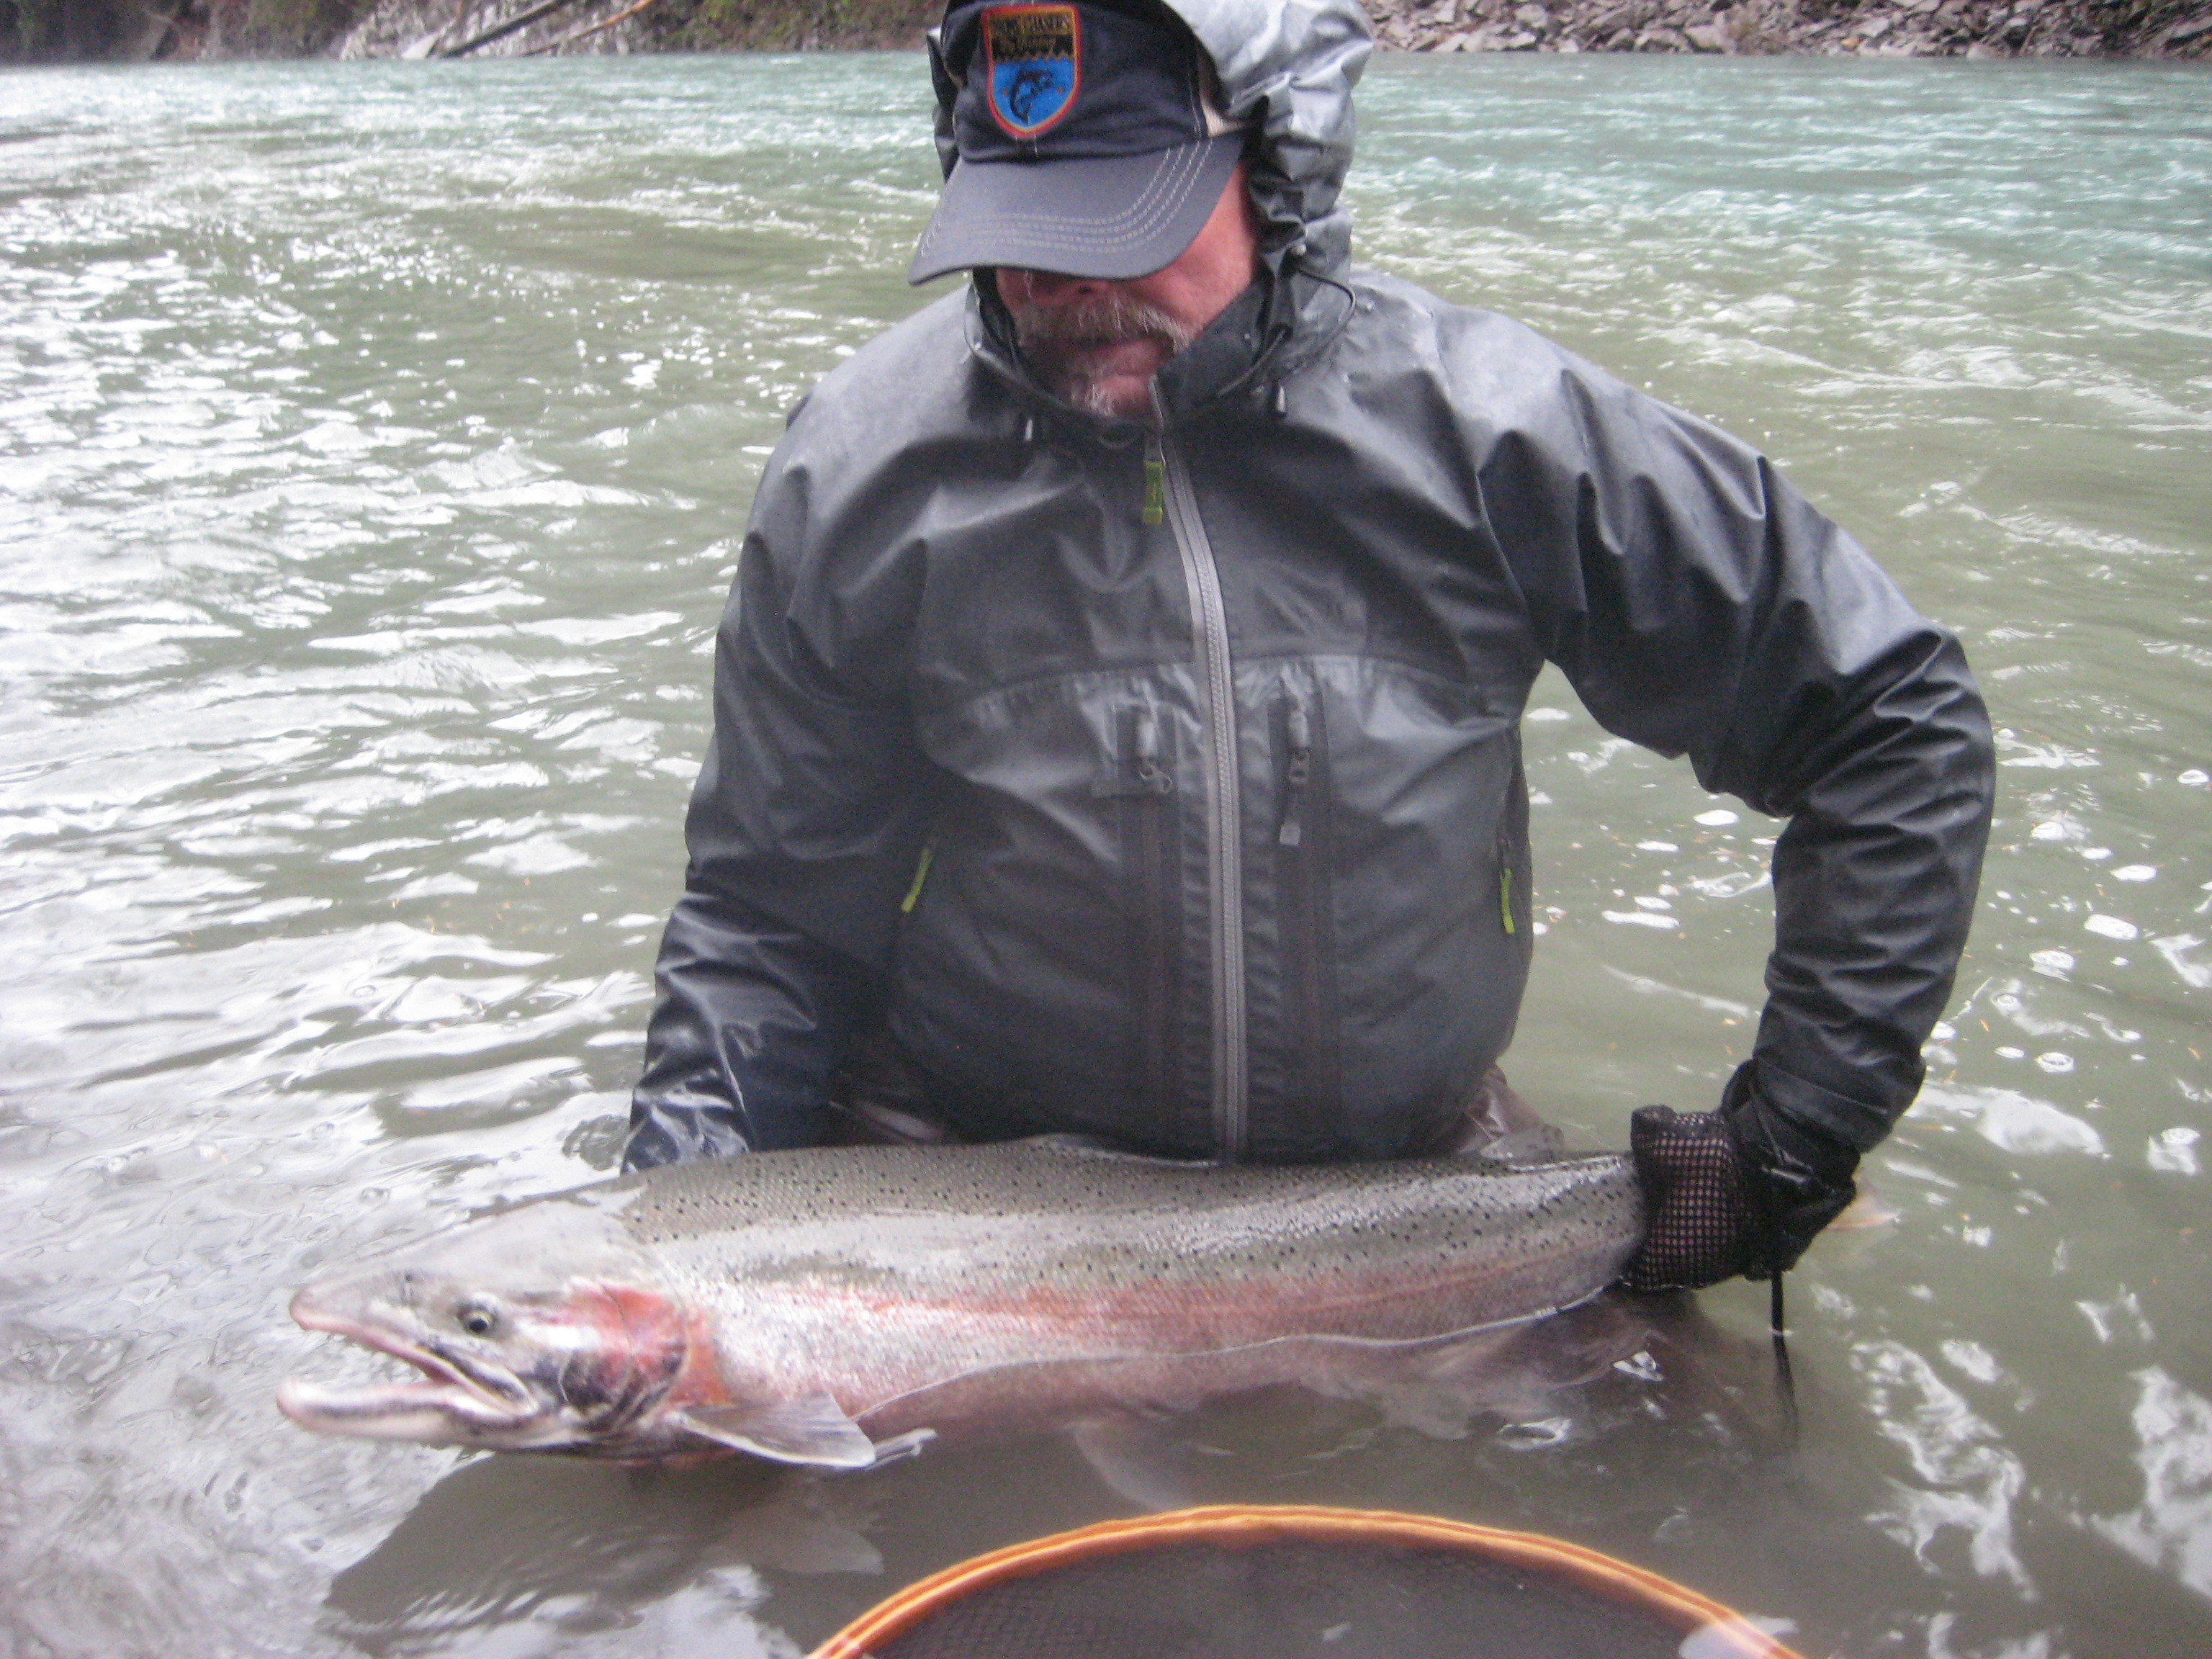 Chrome Chasers Fly Fishing: Guided Fishing Trip